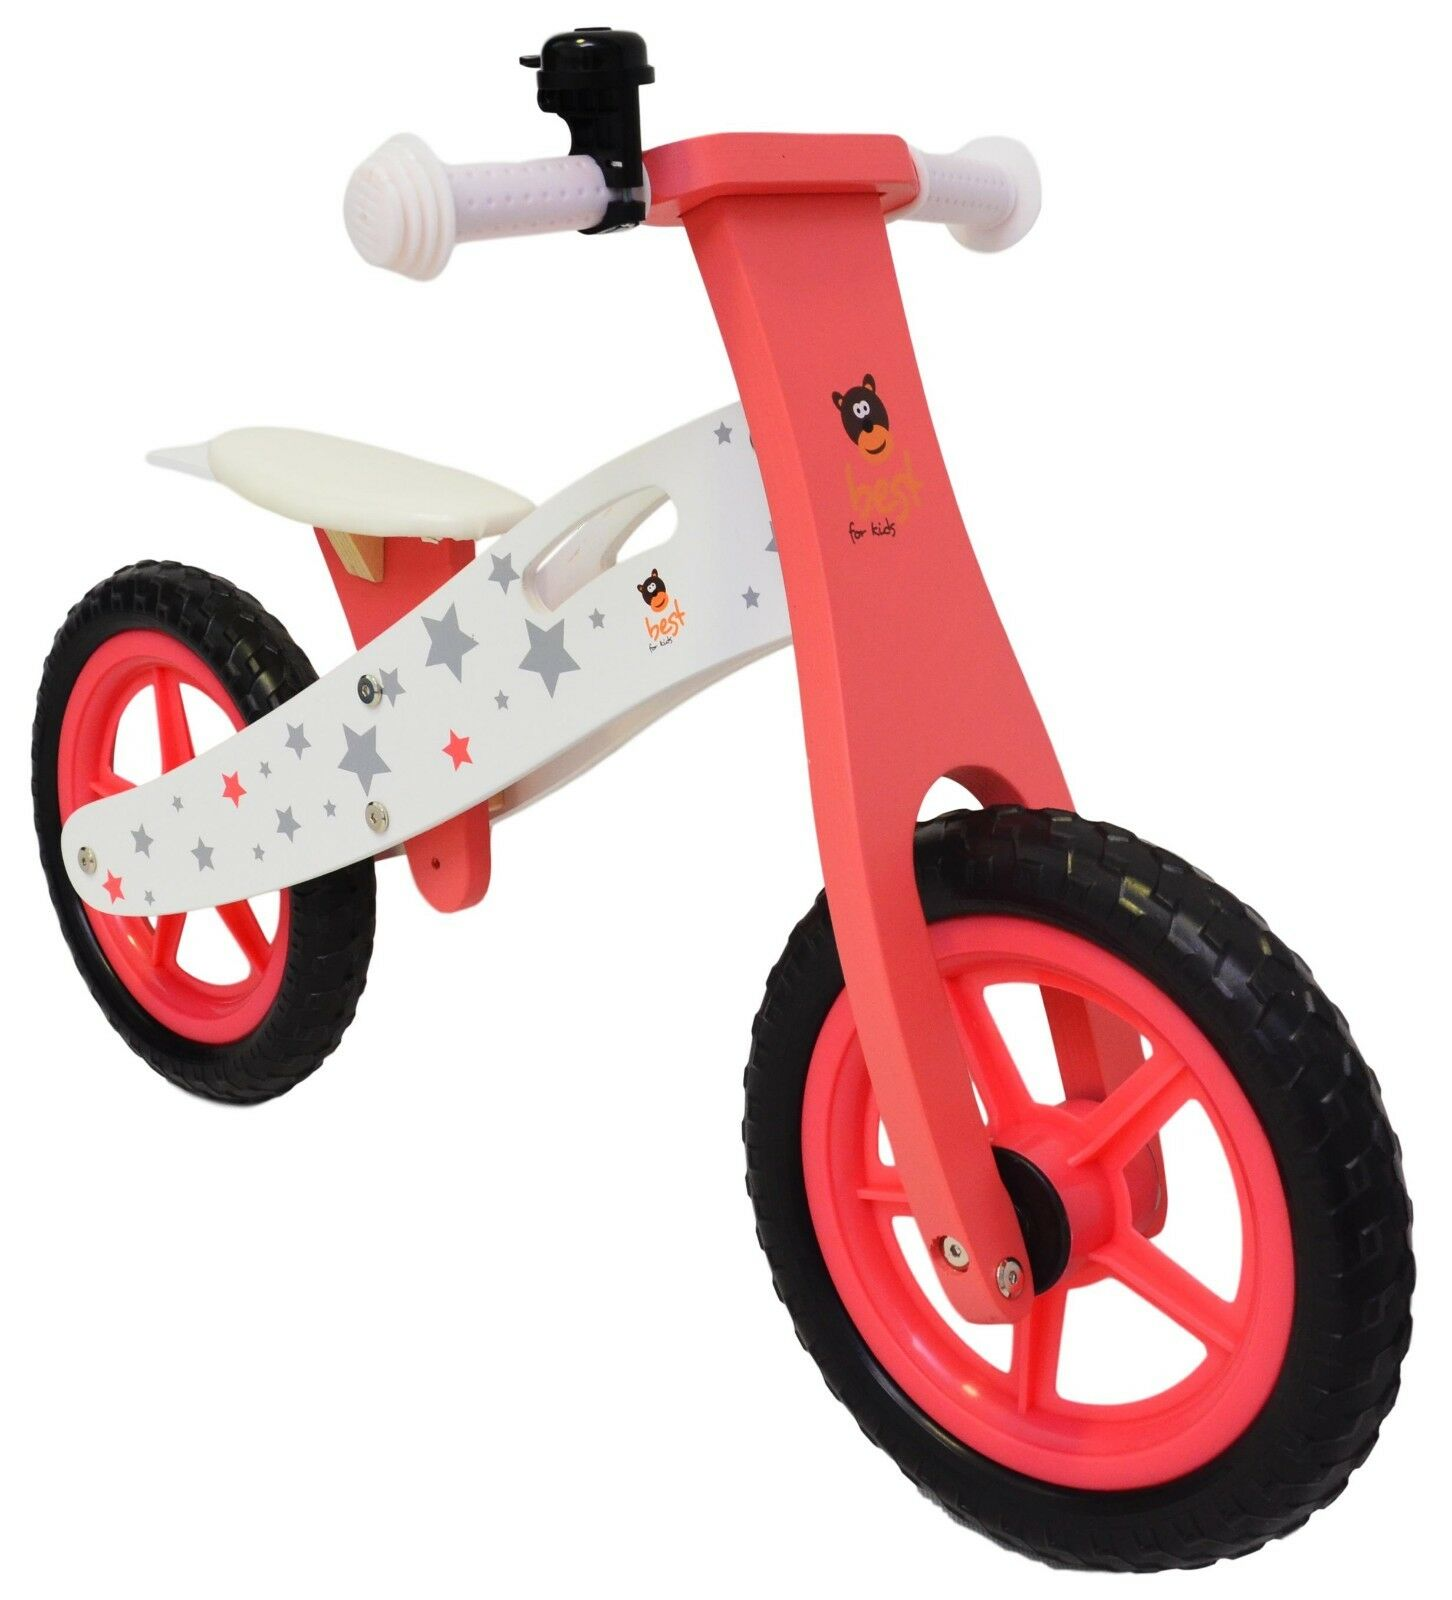 Best For Kids Kinder Laufrad Lauflernrad 12 Zoll Holz 3 Modele Kinderrad